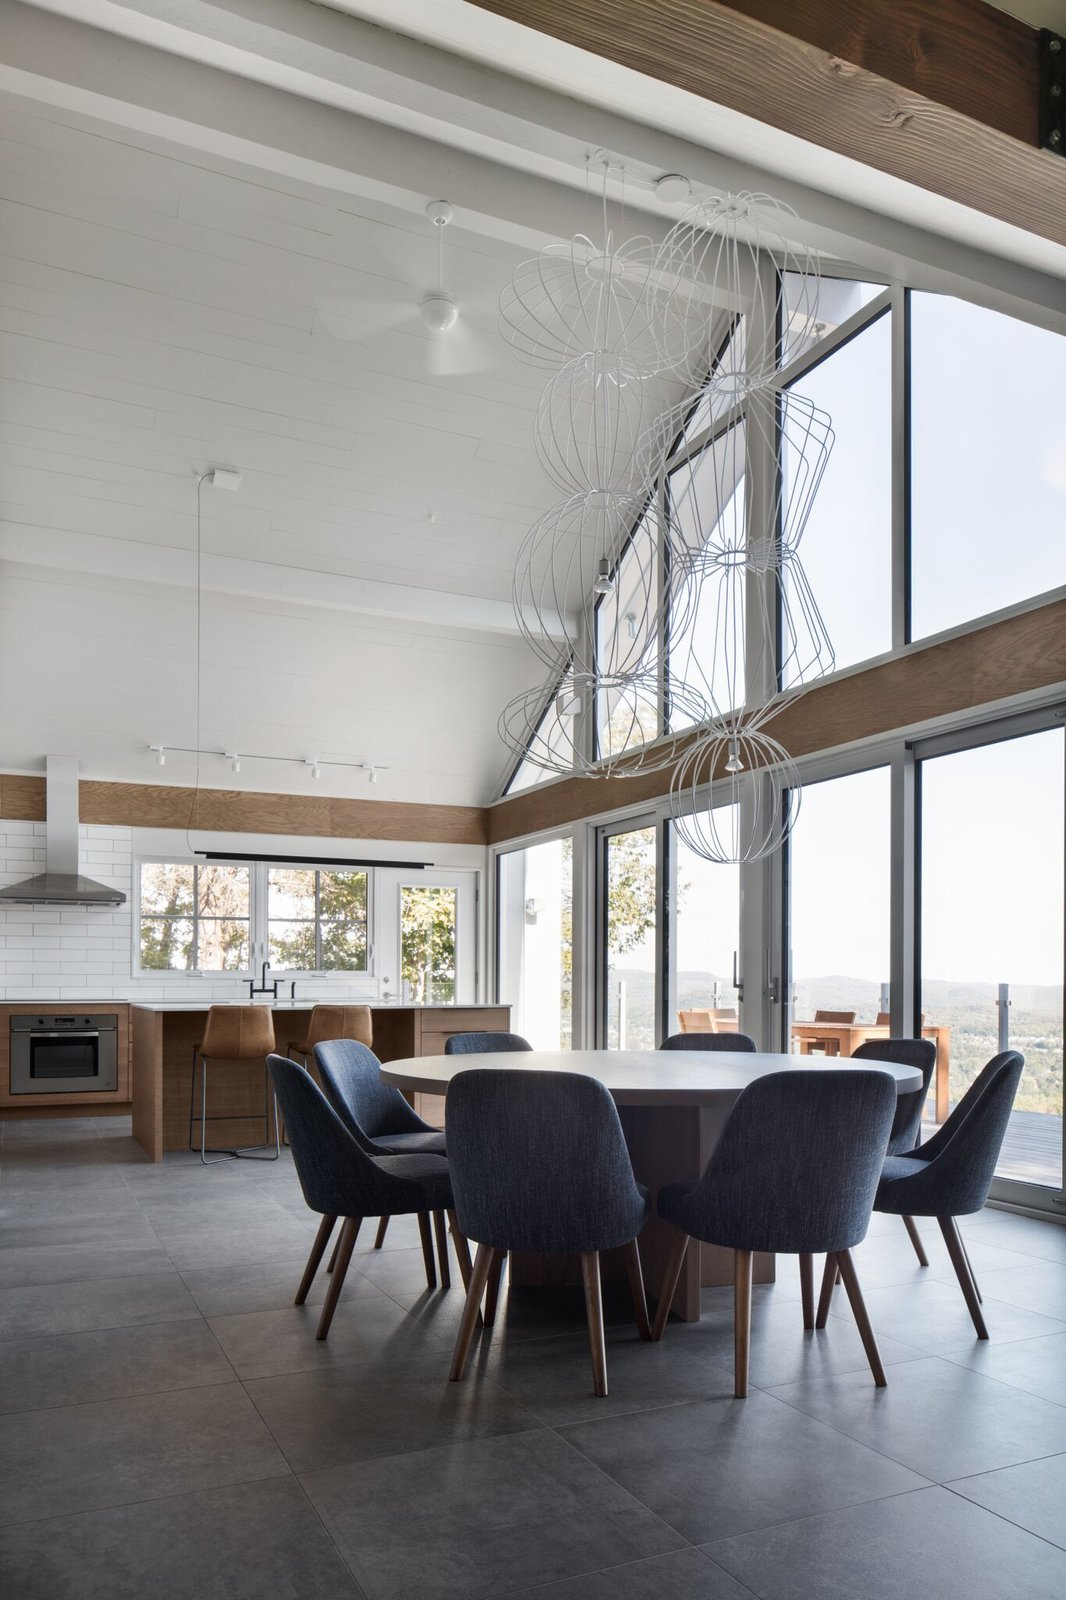 Dining Room, Chair, Table, and Pendant Lighting The dining room suspension light is a custom design by Robert Franco. The dining chairs are by West Elm.  Photo 8 of 13 in A 1960s Canadian Ski House Is Rebuilt Into a Gorgeous Abode